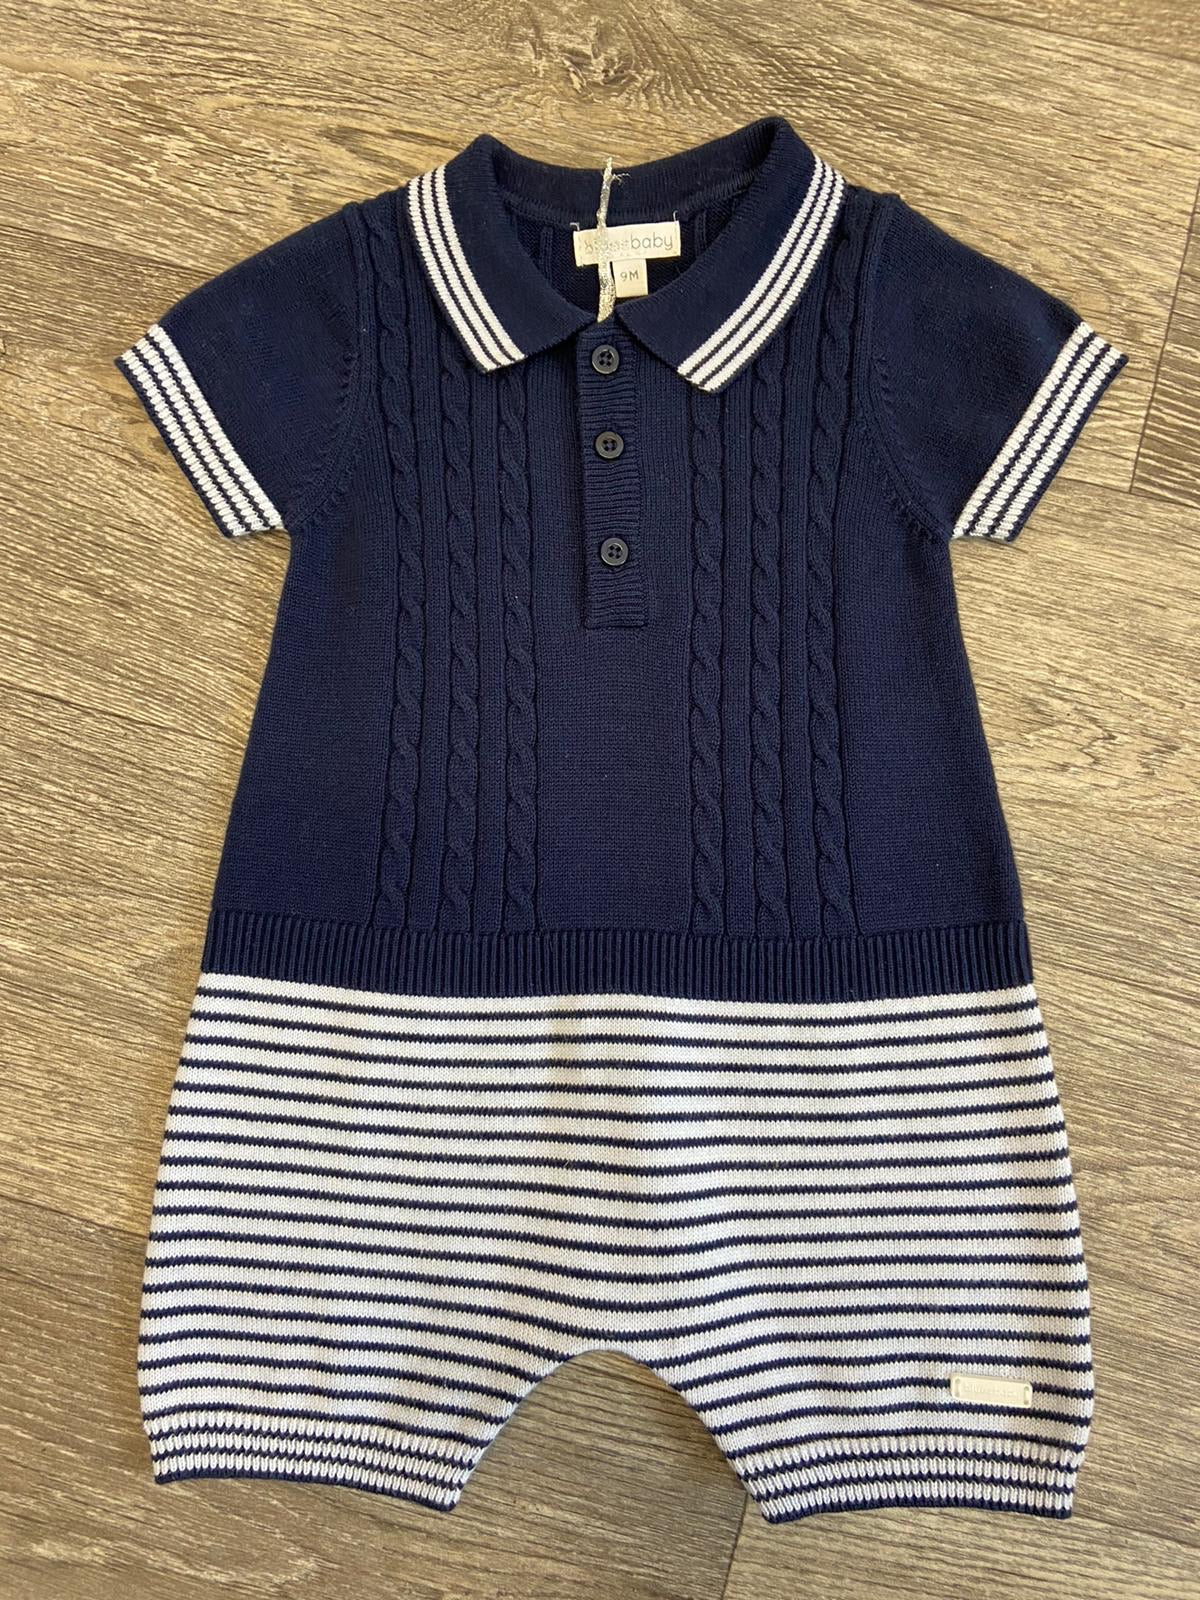 Blues Baby Knitted Navy Romper